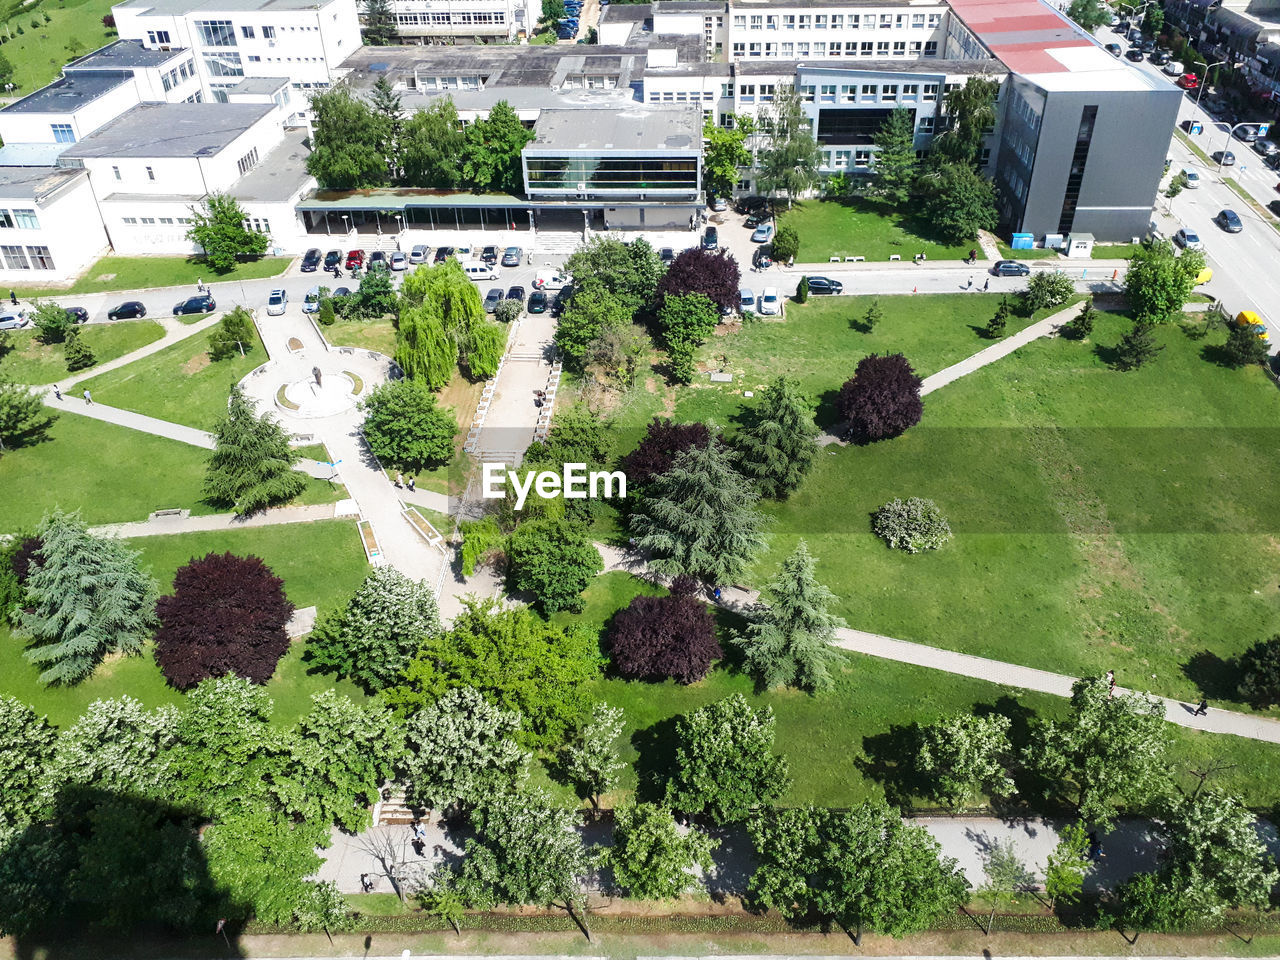 HIGH ANGLE VIEW OF TREES AND BUILDINGS